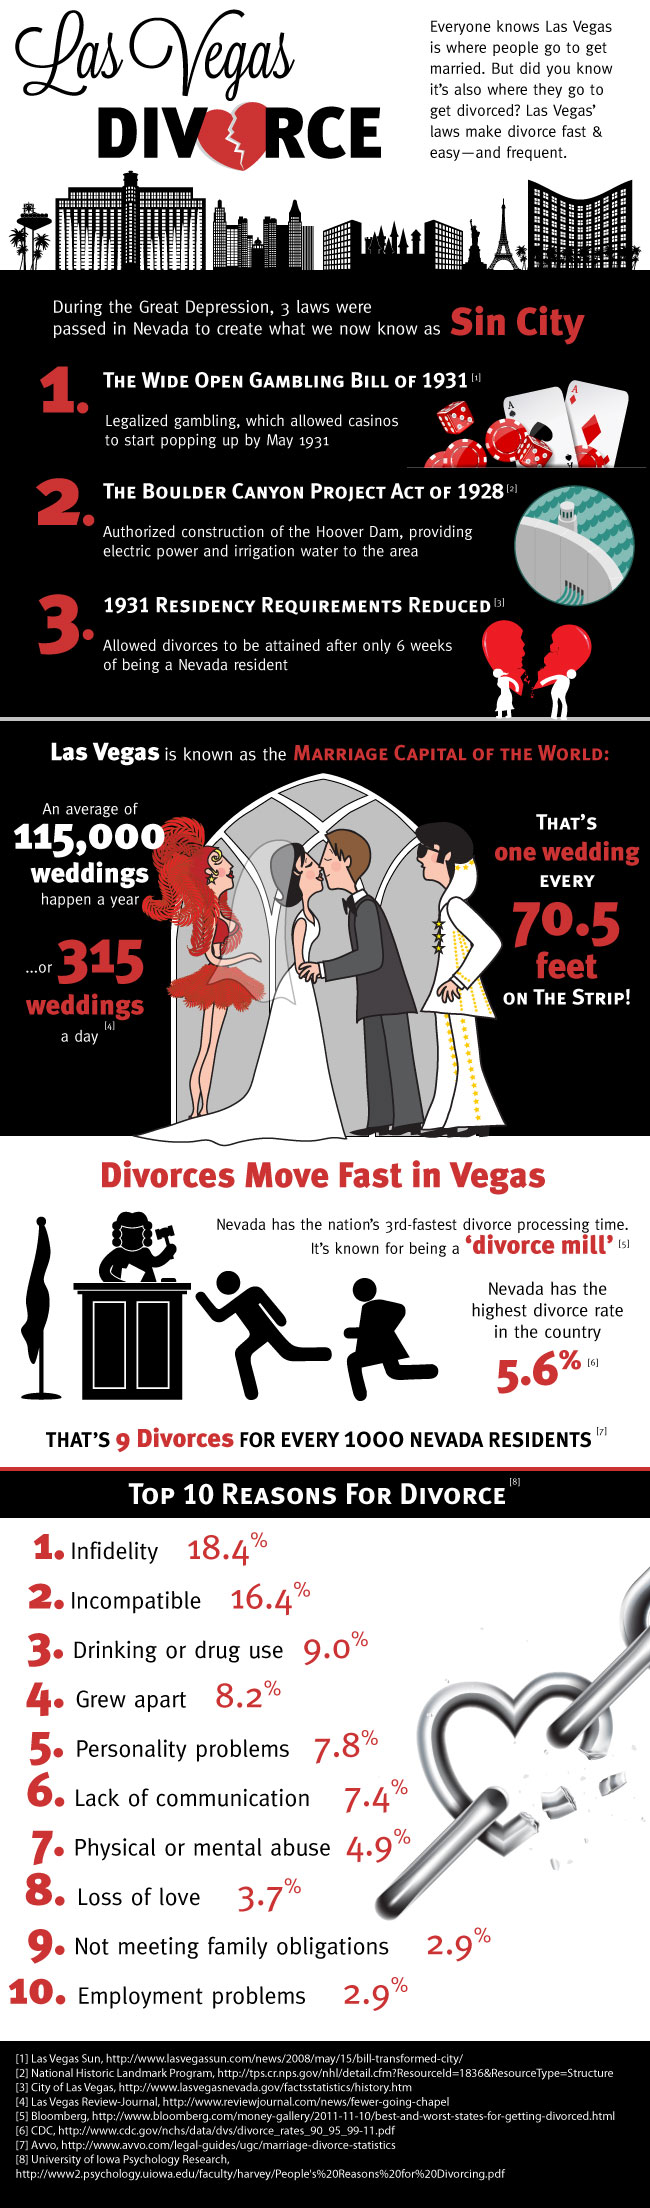 Las Vegas Divorce: By The Numbers